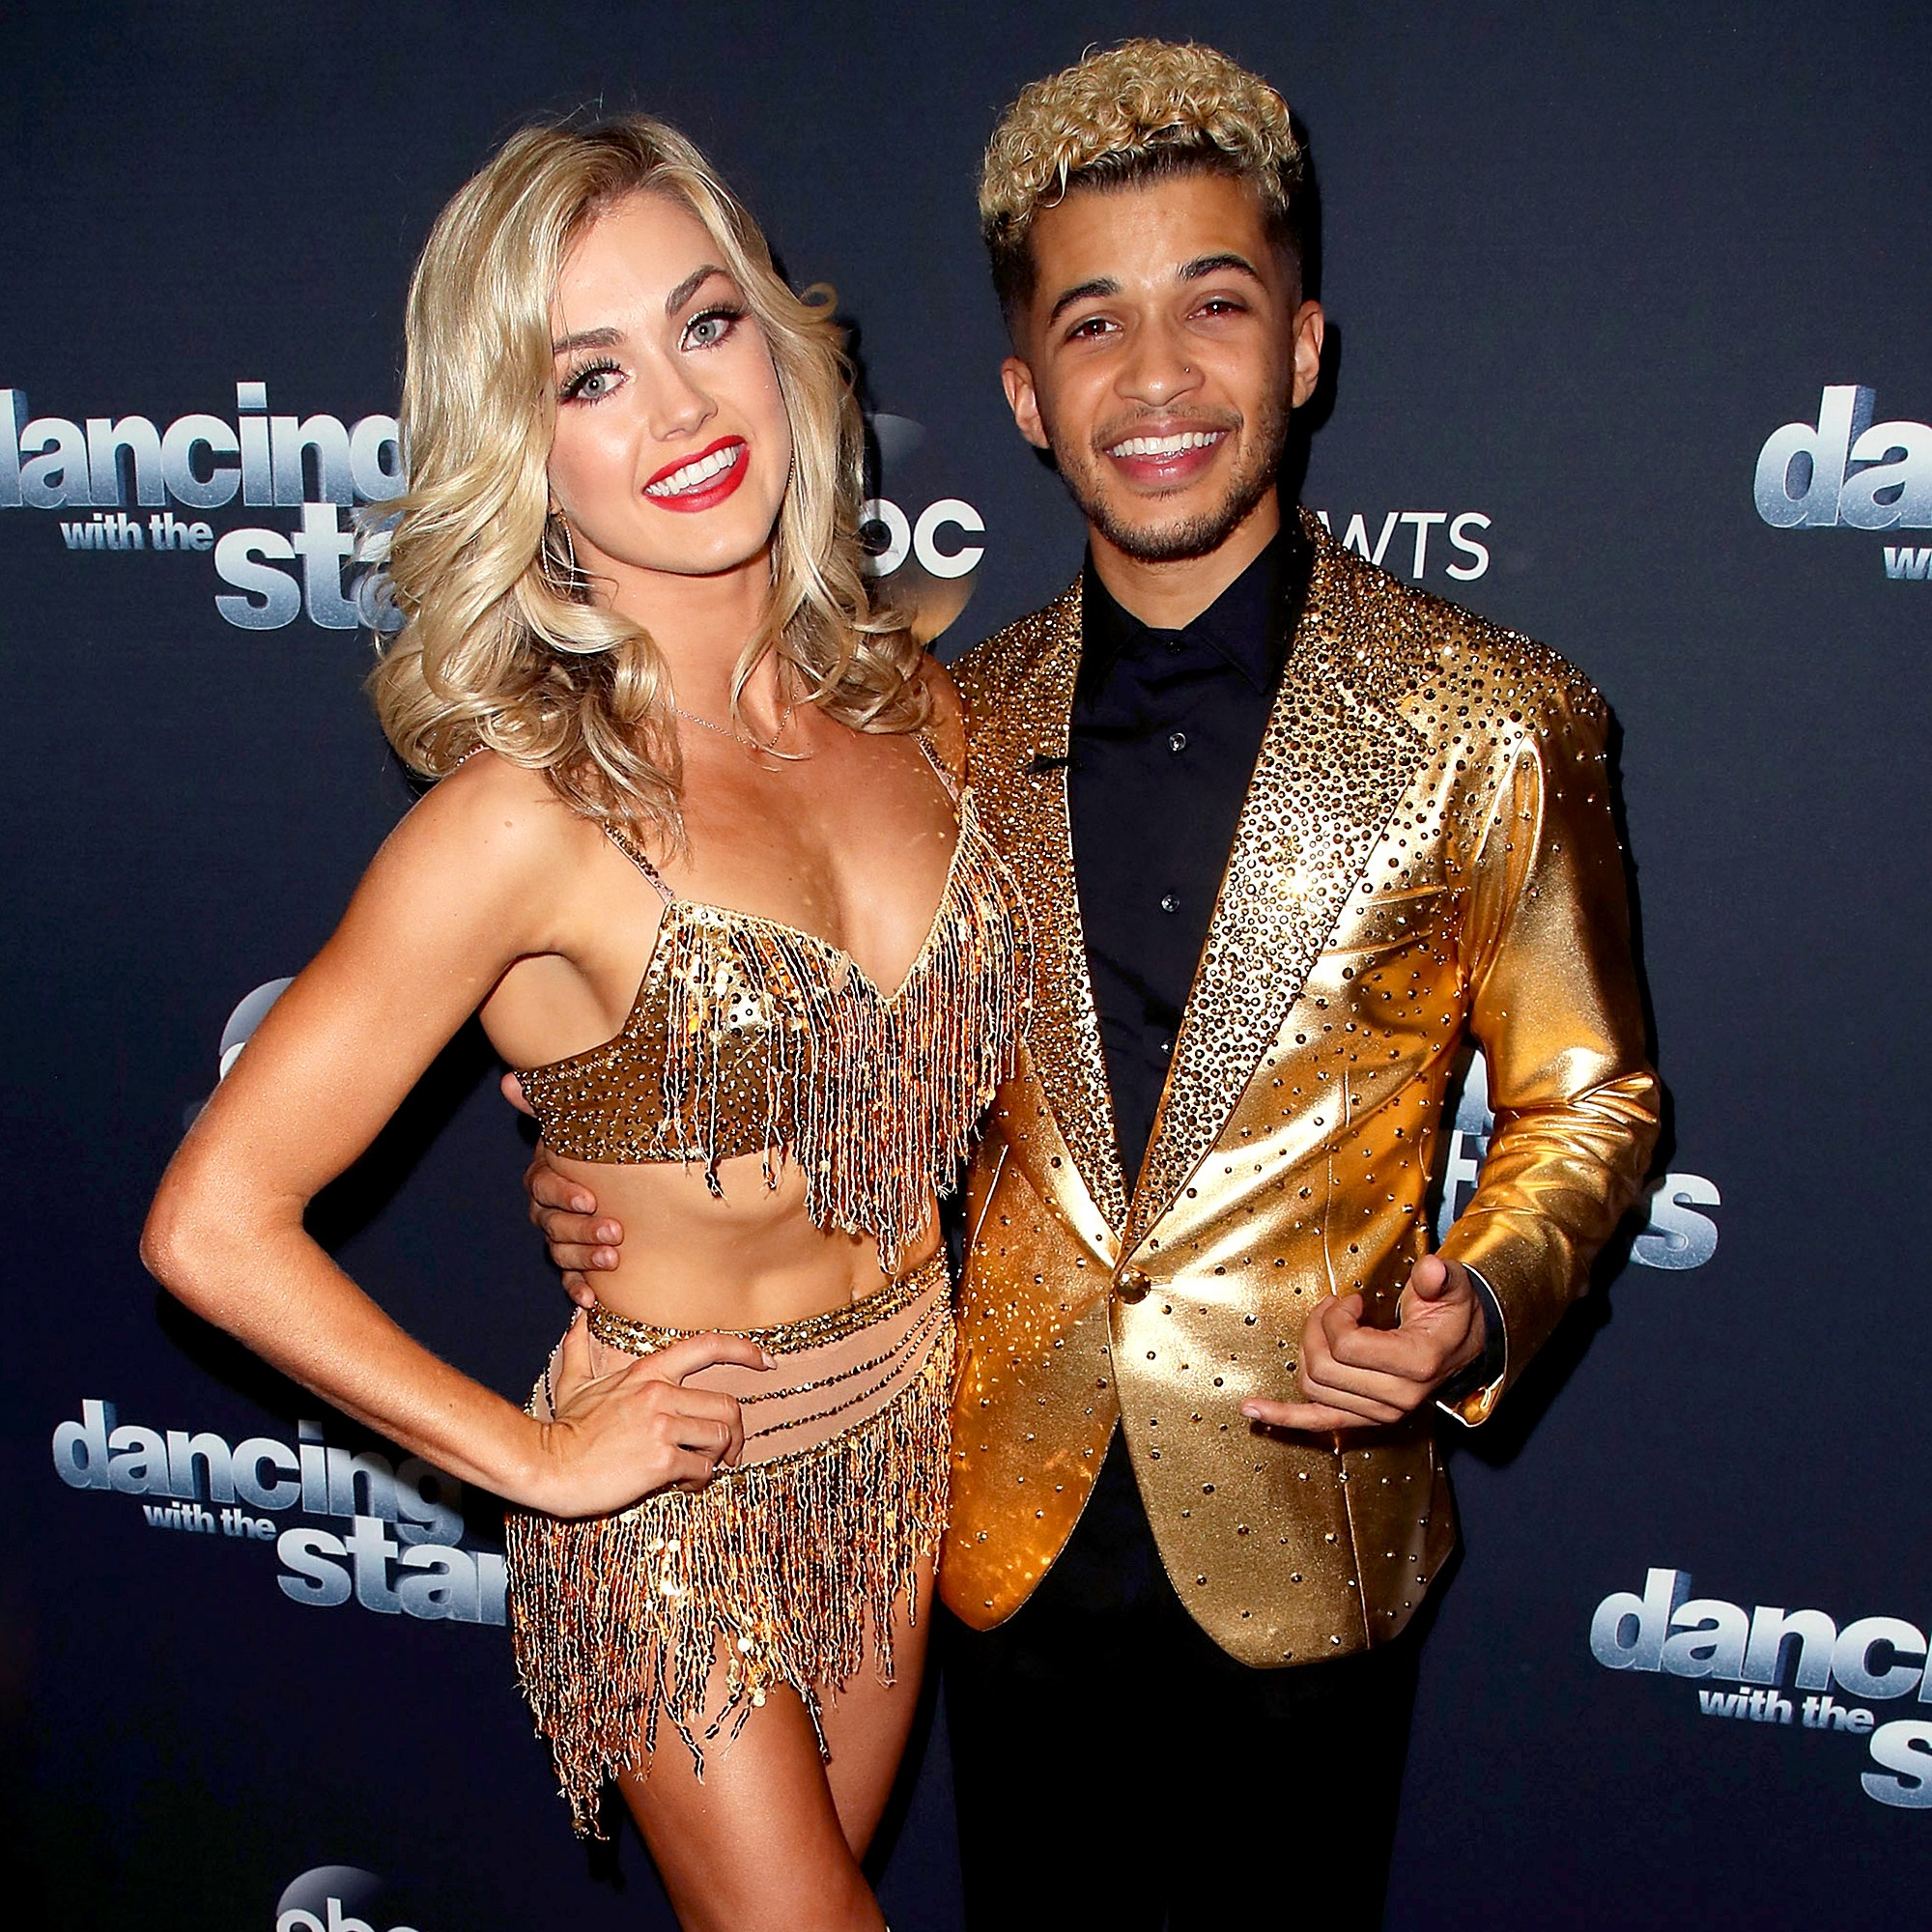 """Jordan Fisher and Lindsay Arnold pose at """"Dancing with the Stars"""" season 25 at CBS Televison City on November 13, 2017 in Los Angeles, California."""